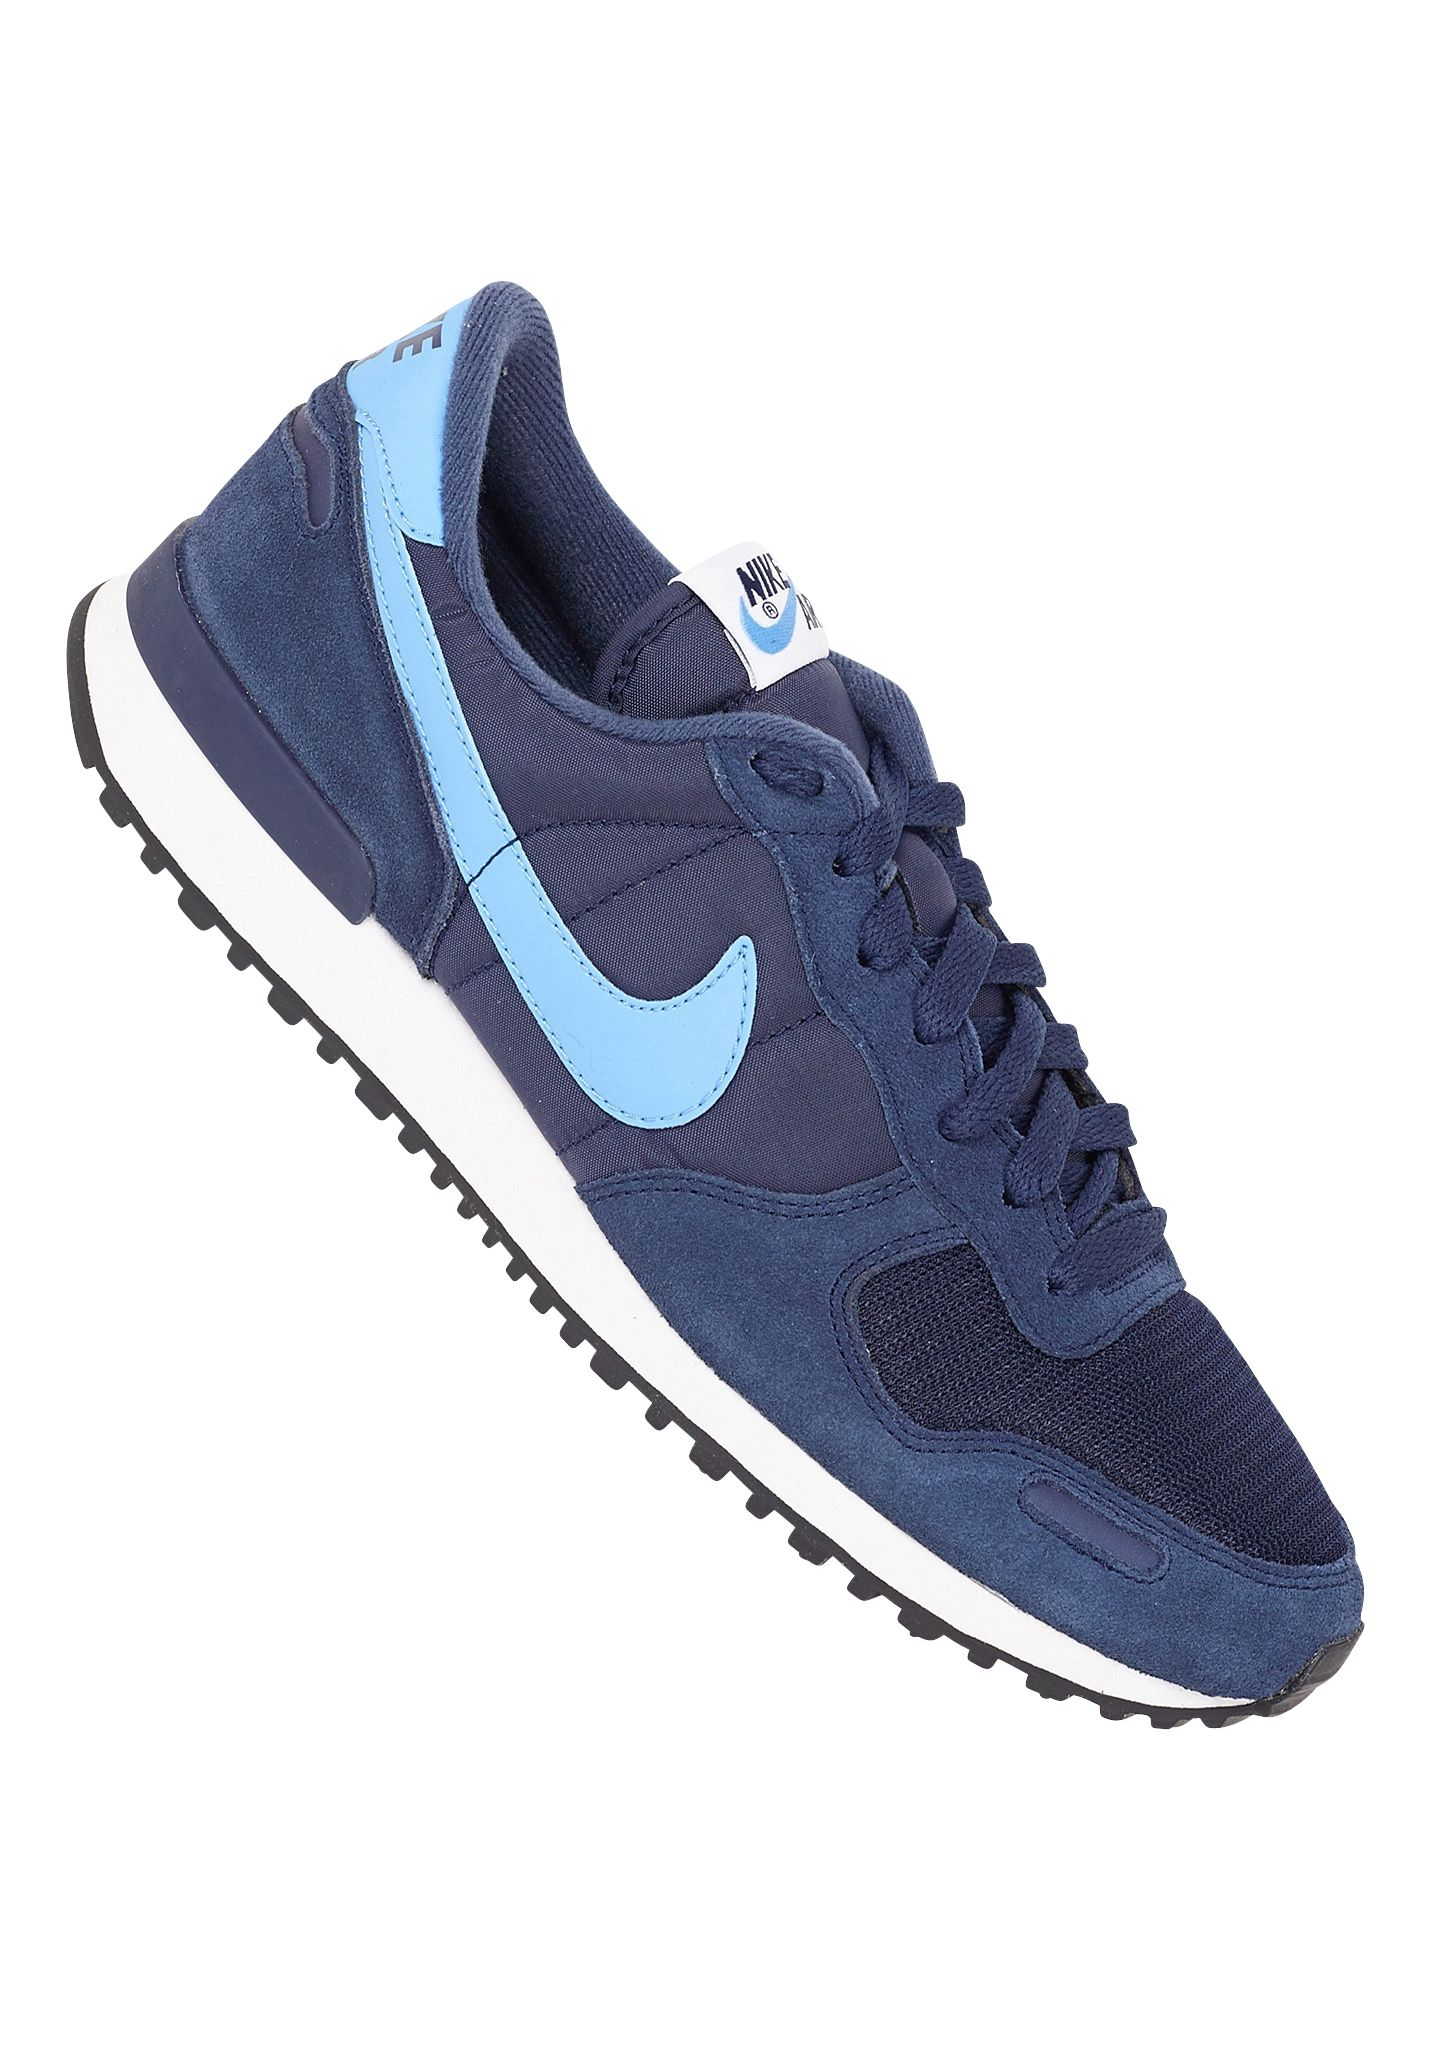 competitive price d9712 0a2a1 NIKE SPORTSWEAR Air Vortex Retro - Sneakers for Men - Blue - Planet Sports